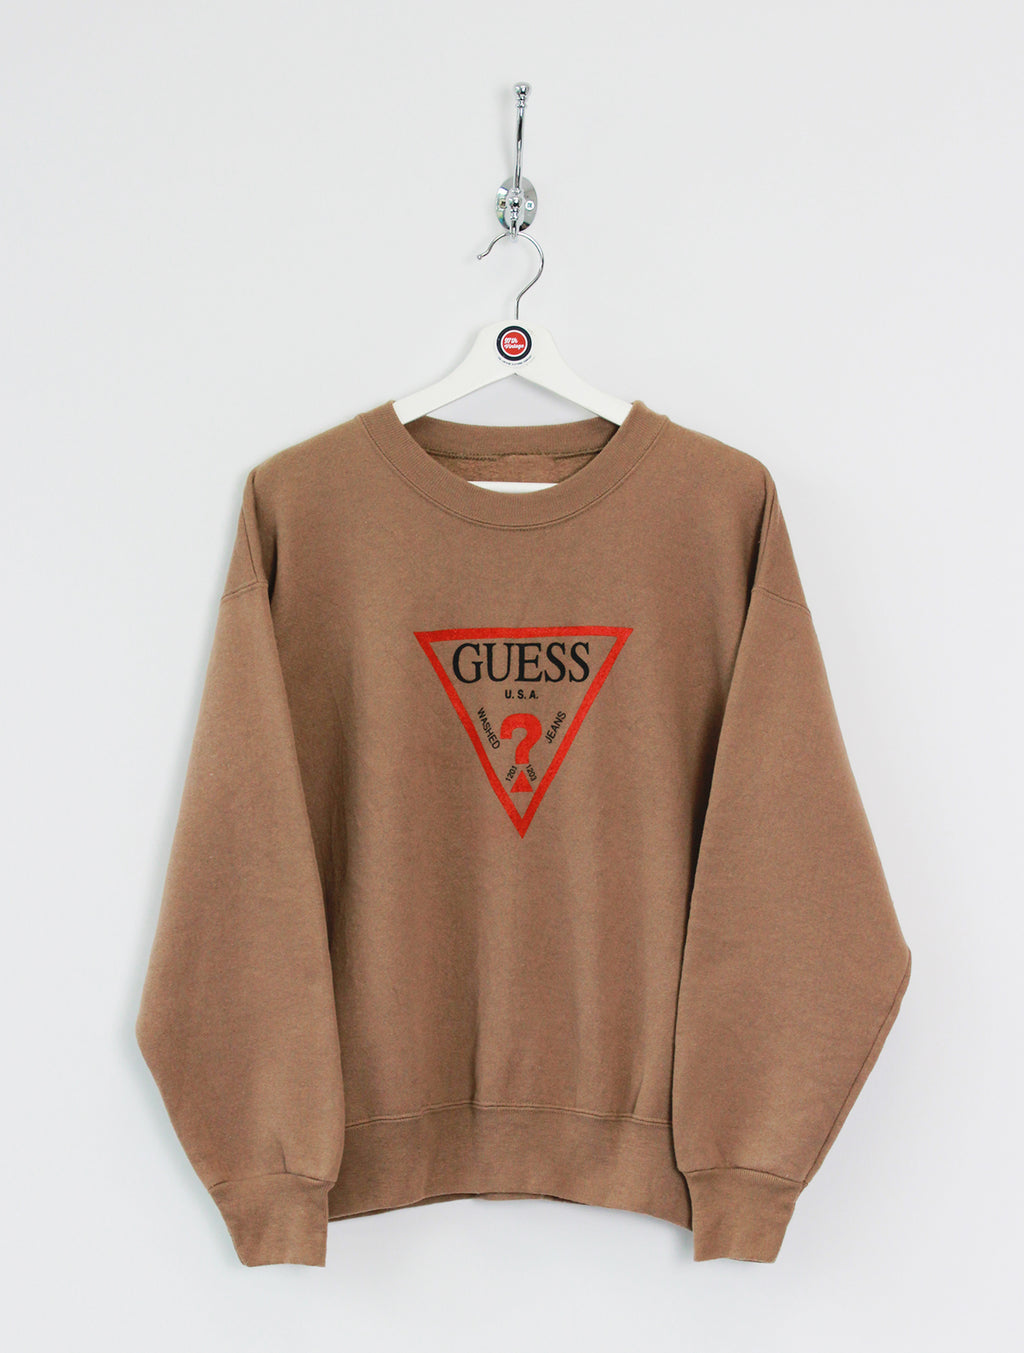 Guess Sweatshirt (S)